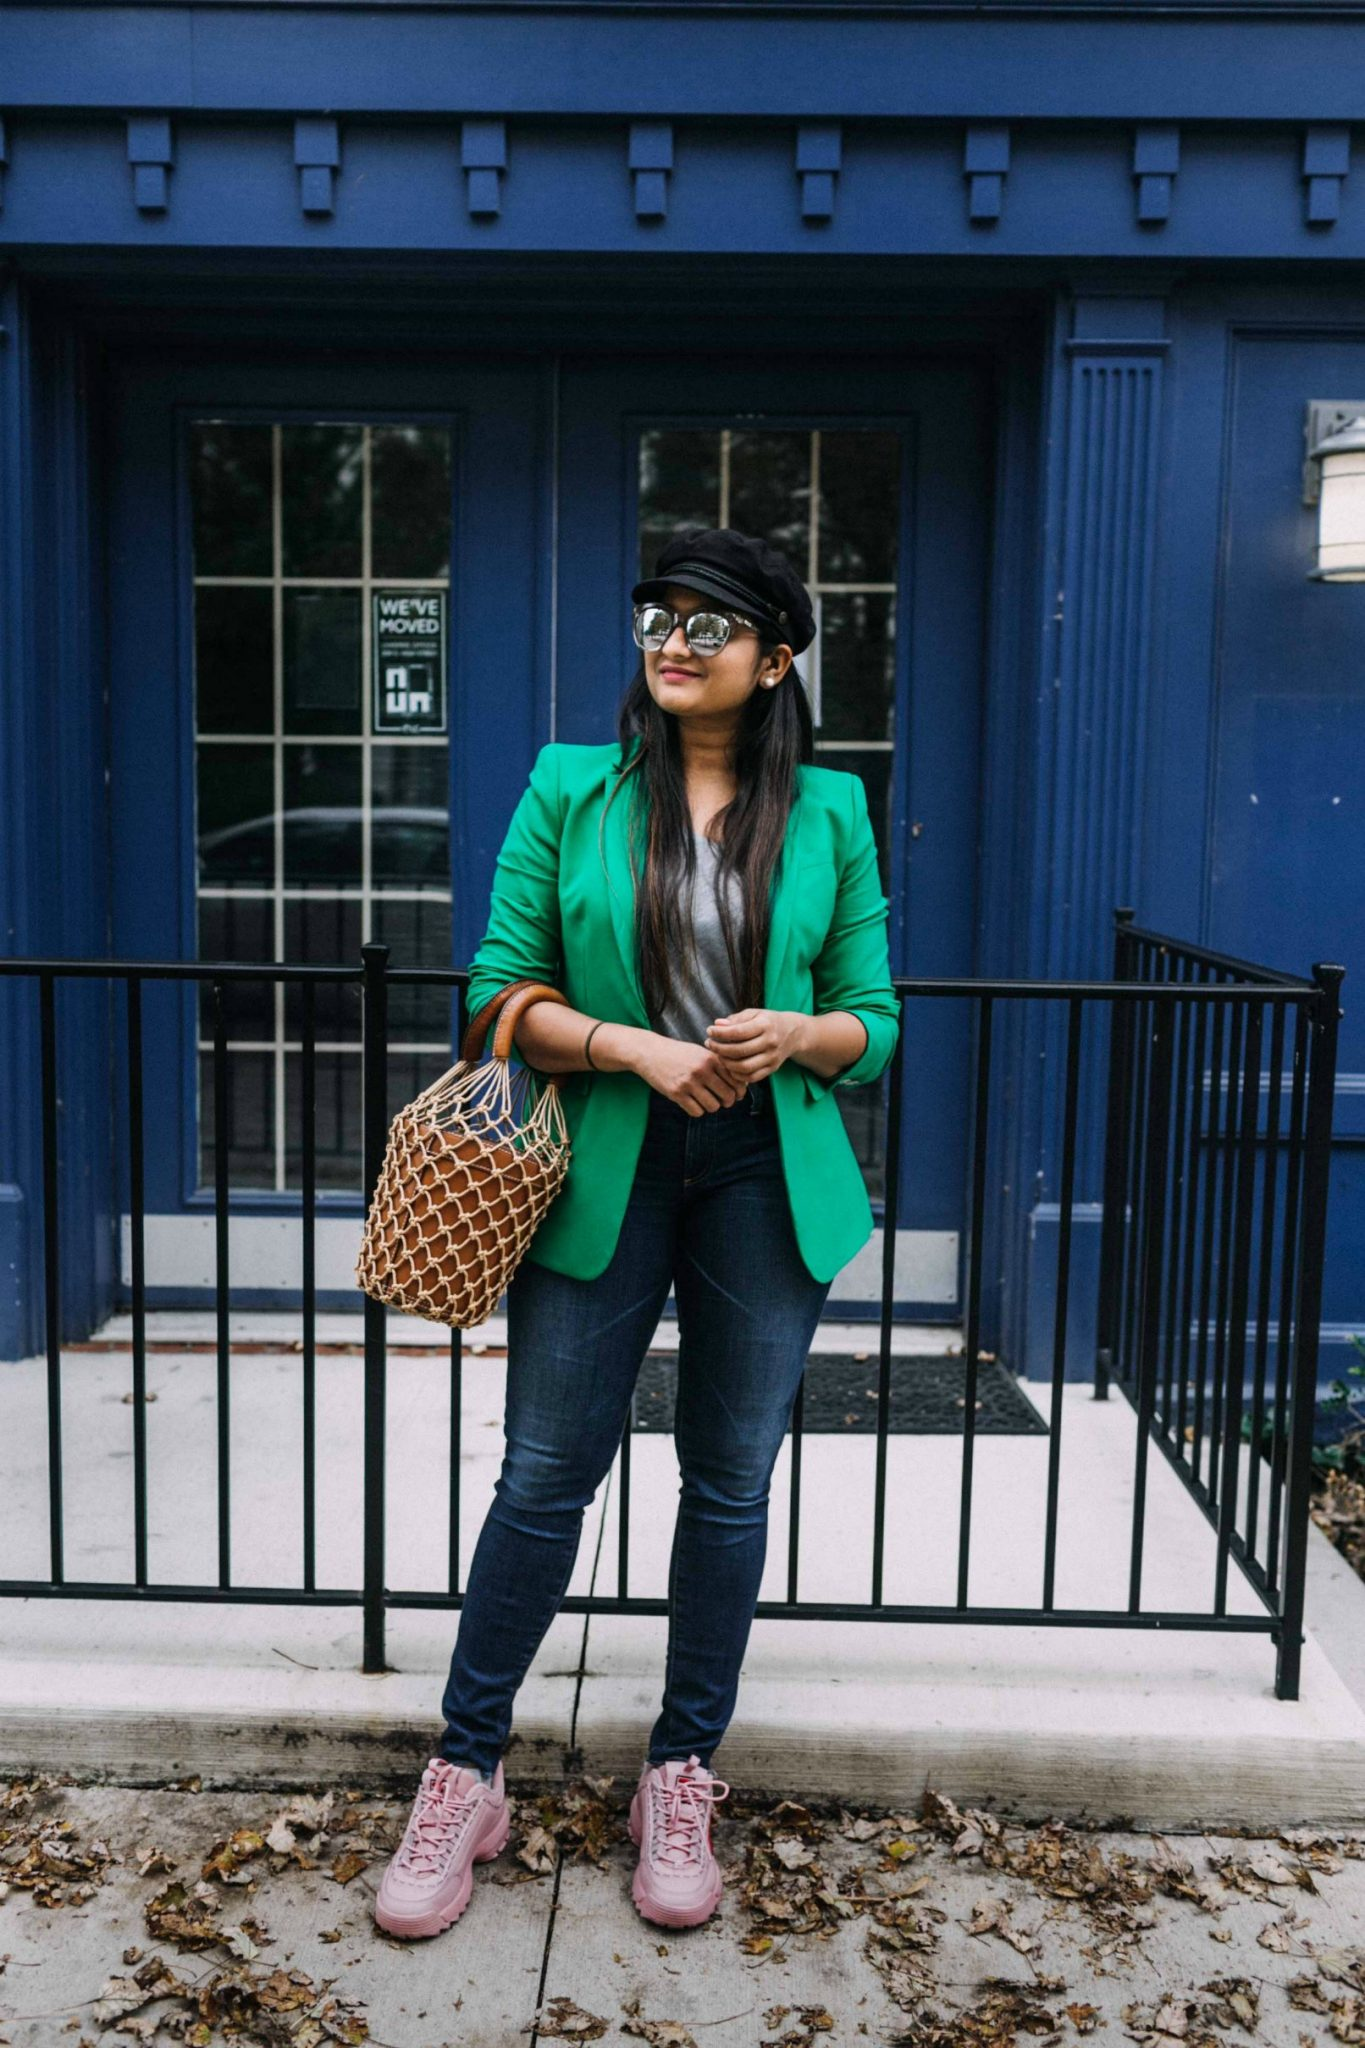 how to wear or style green blazer with sneakers| 5 Chic Ways to Wear the New Chunky Sneaker Trend: ugly sneakers & dad sneakers, featured by popular US fashion blogger, Dreaming Loud